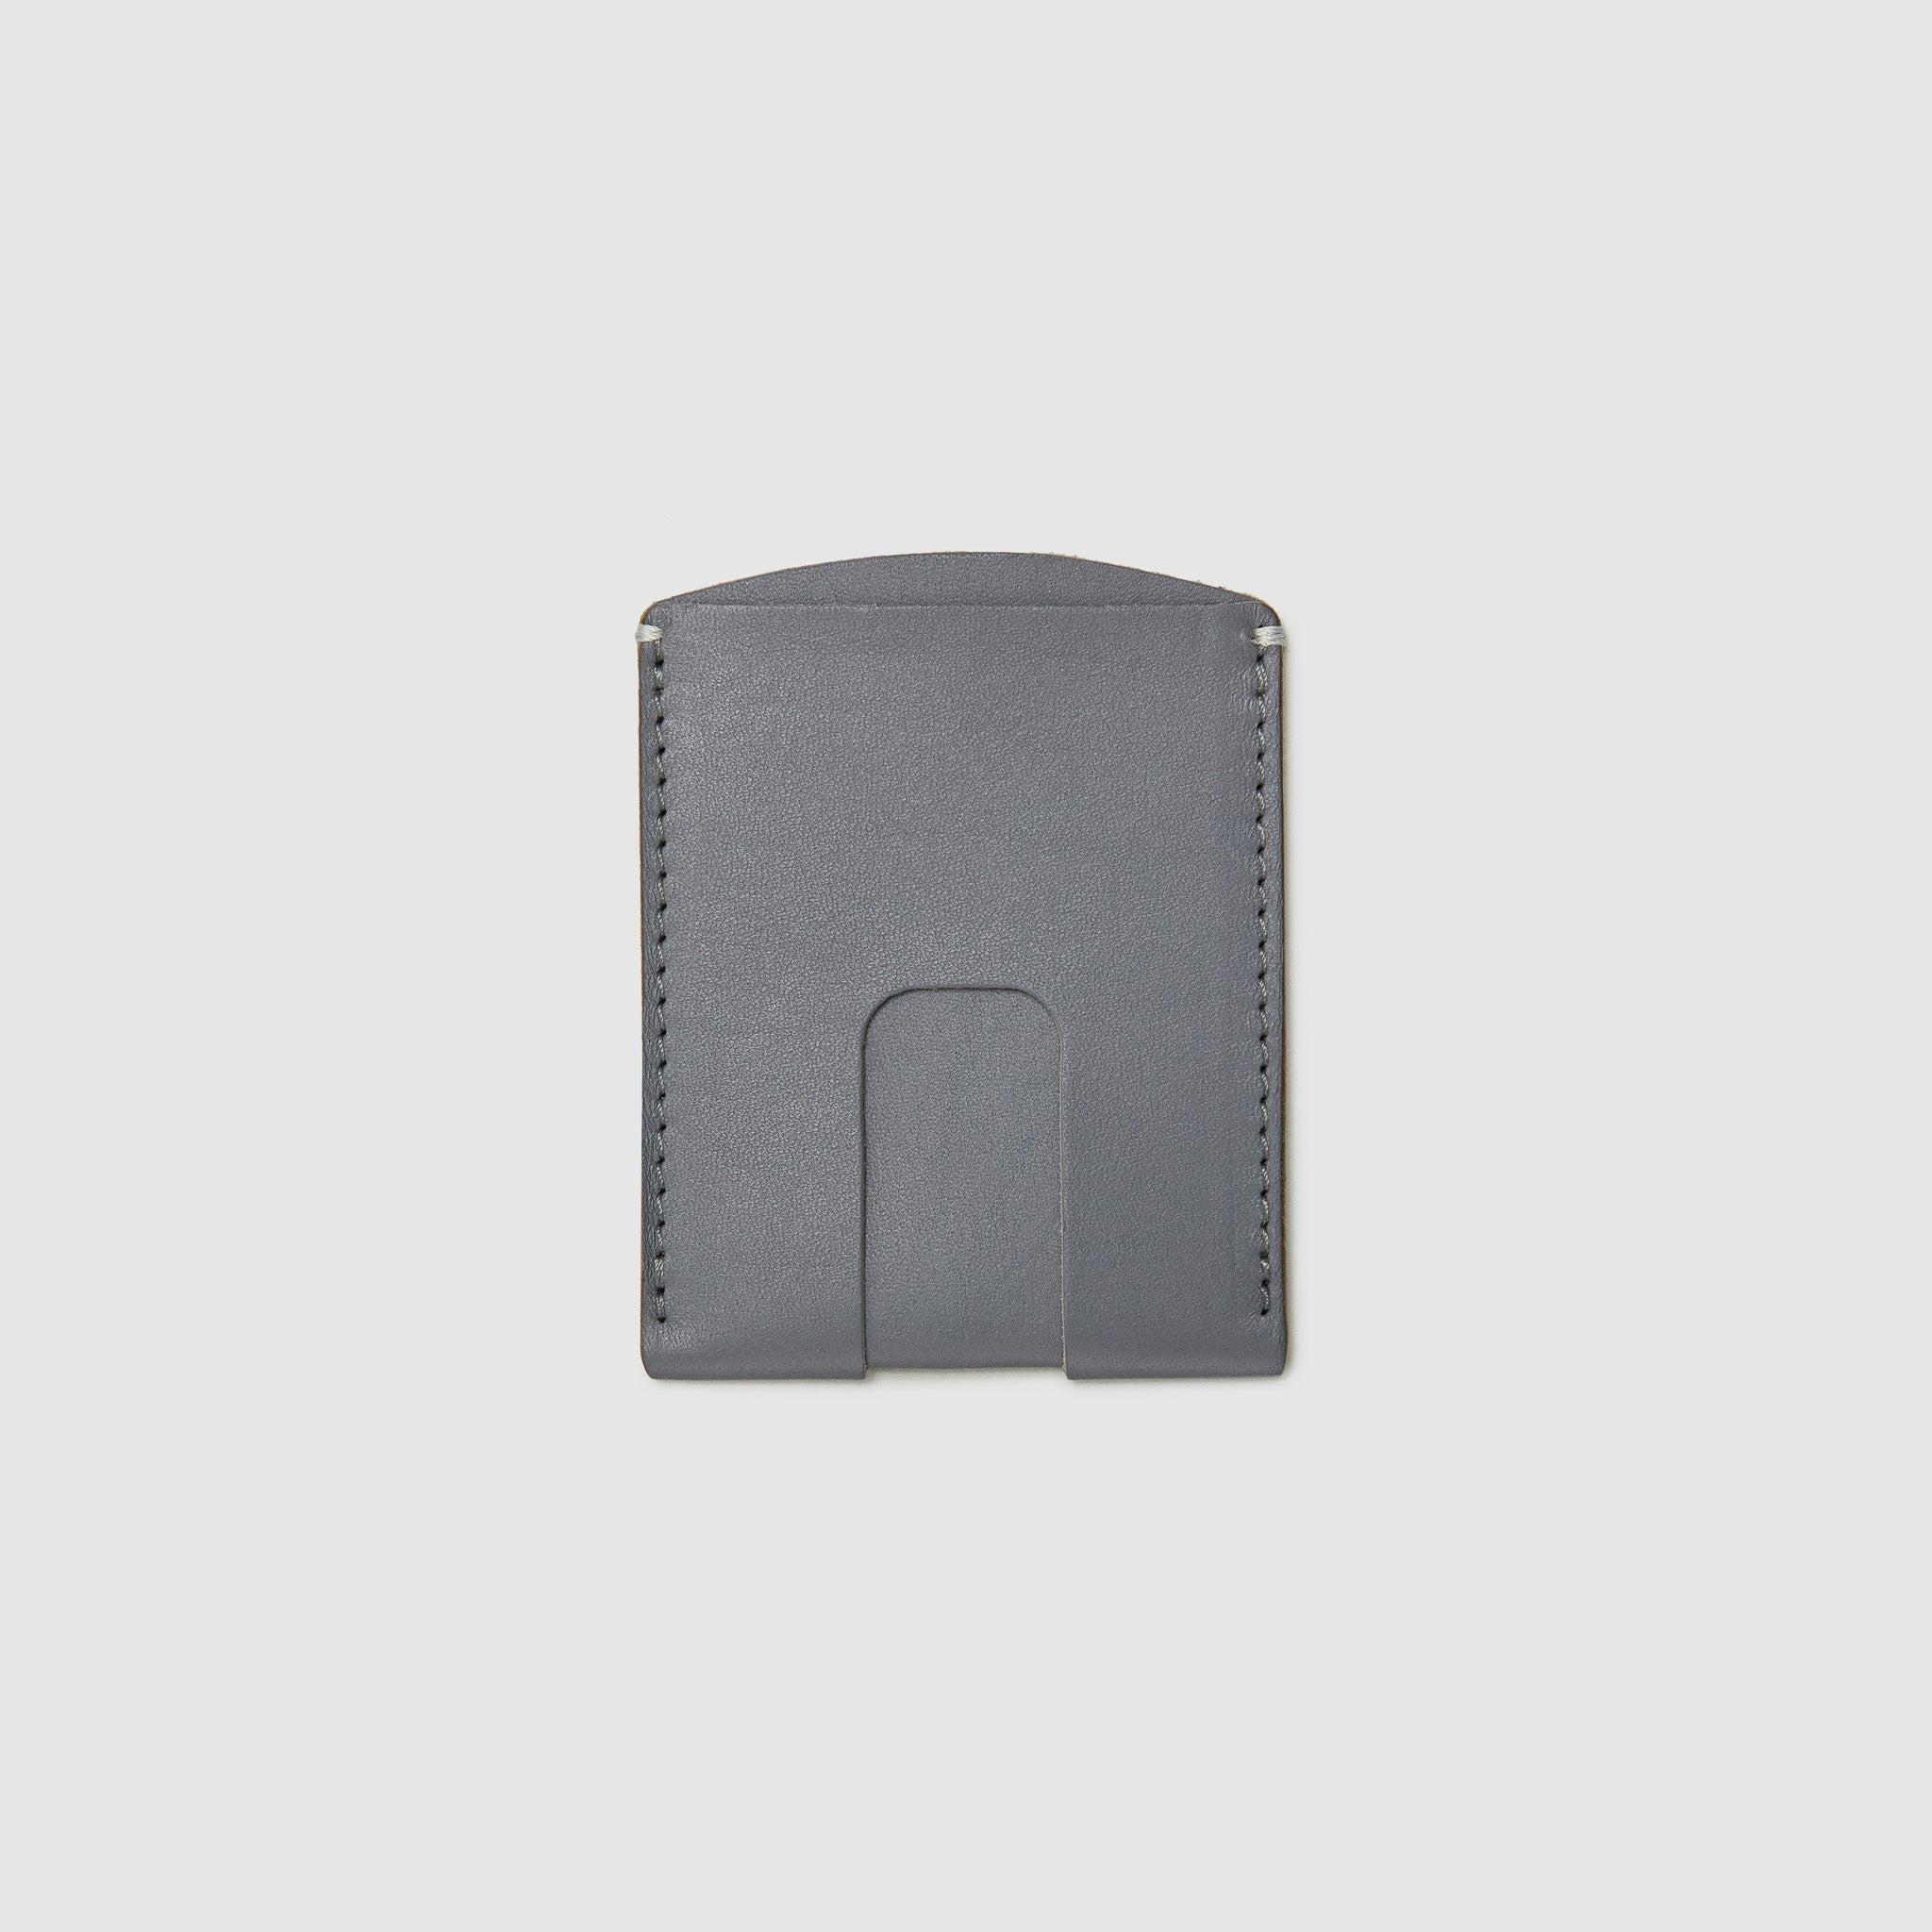 Anson Calder Card Holder Wallet french calfskin leather _steel-grey